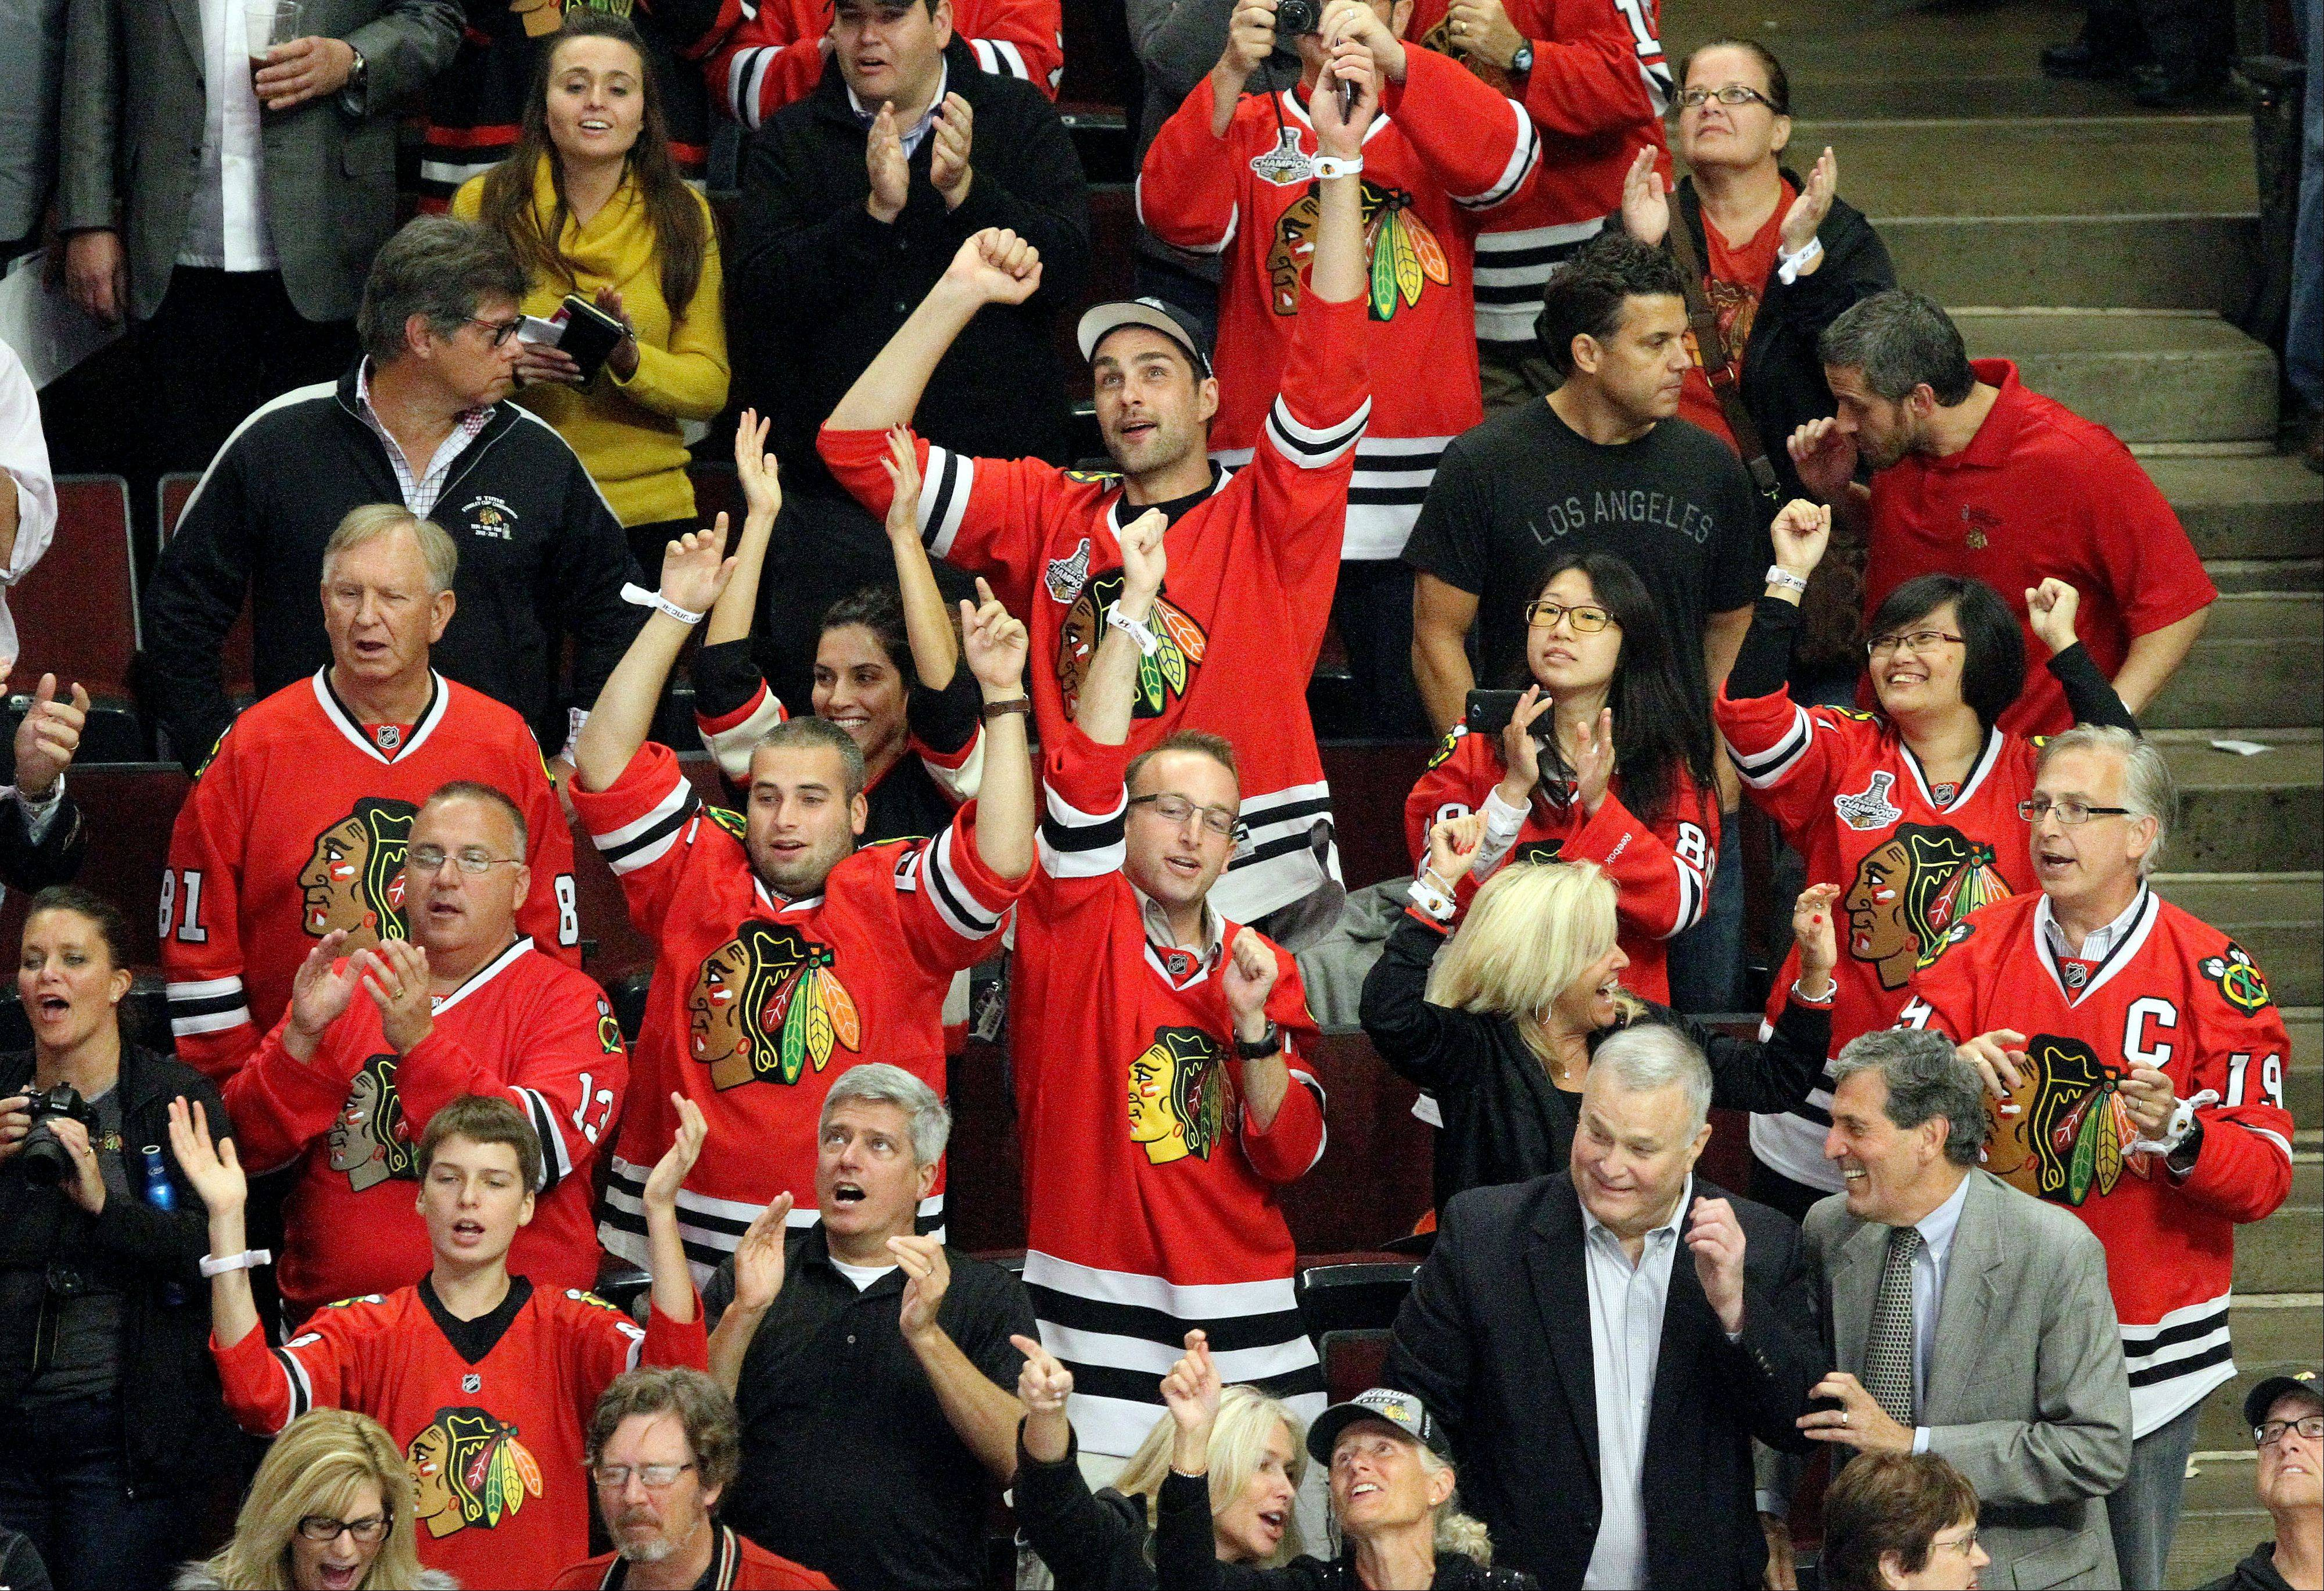 Fans cheer after the Blackhawks 6-4 win.